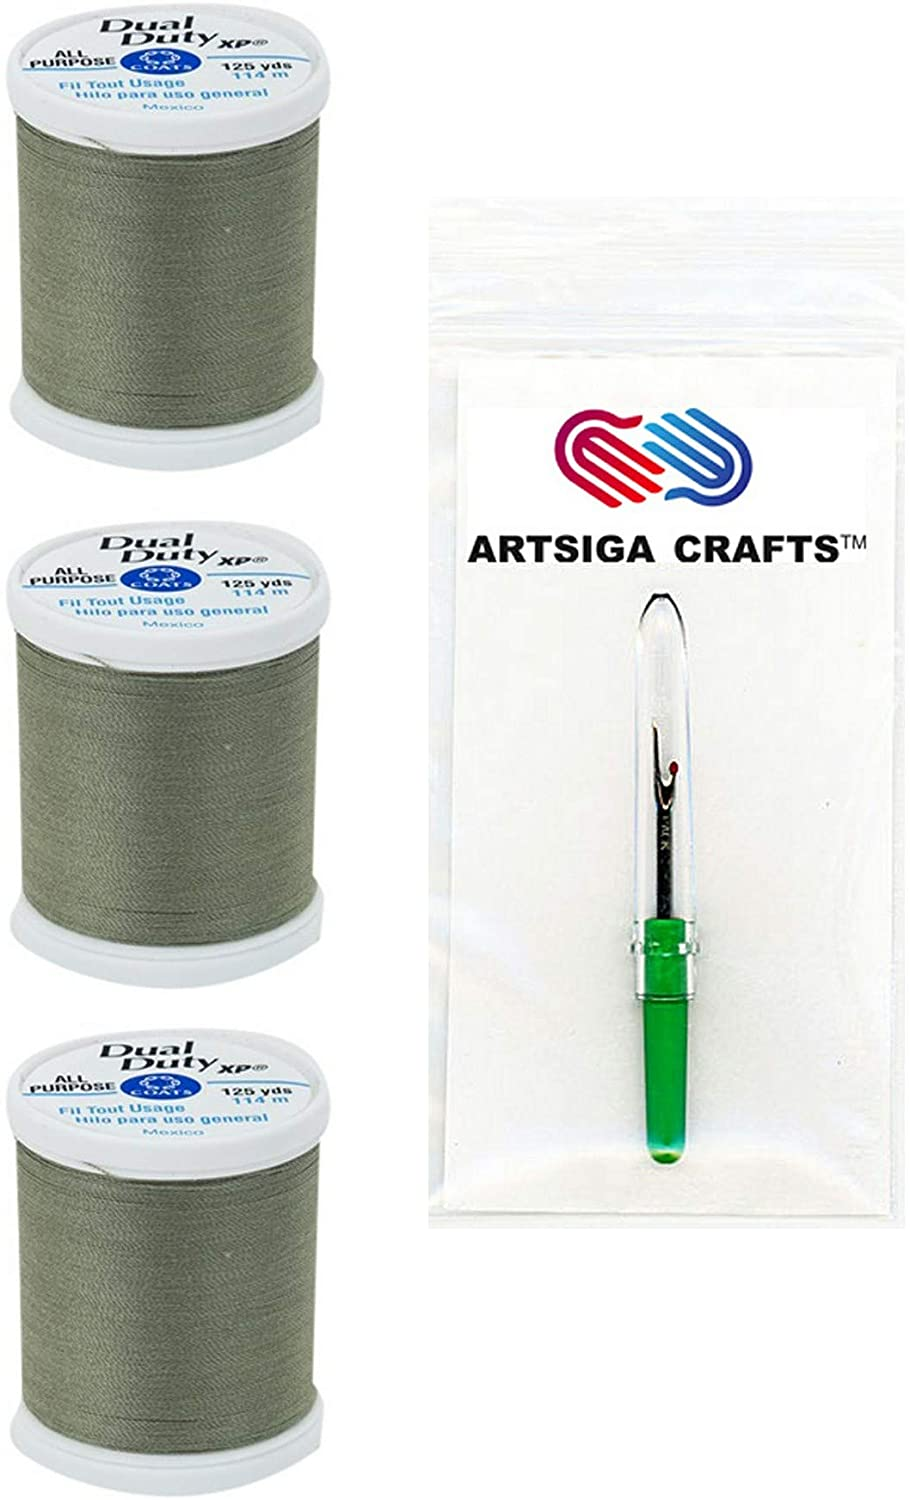 Coats & Clark Sewing Thread Dual Duty XP General Purpose Poly Thread 125 Yards (3-Pack) Green Linen Bundle with 1 Artsiga Crafts Seam Ripper S900-6180-3P